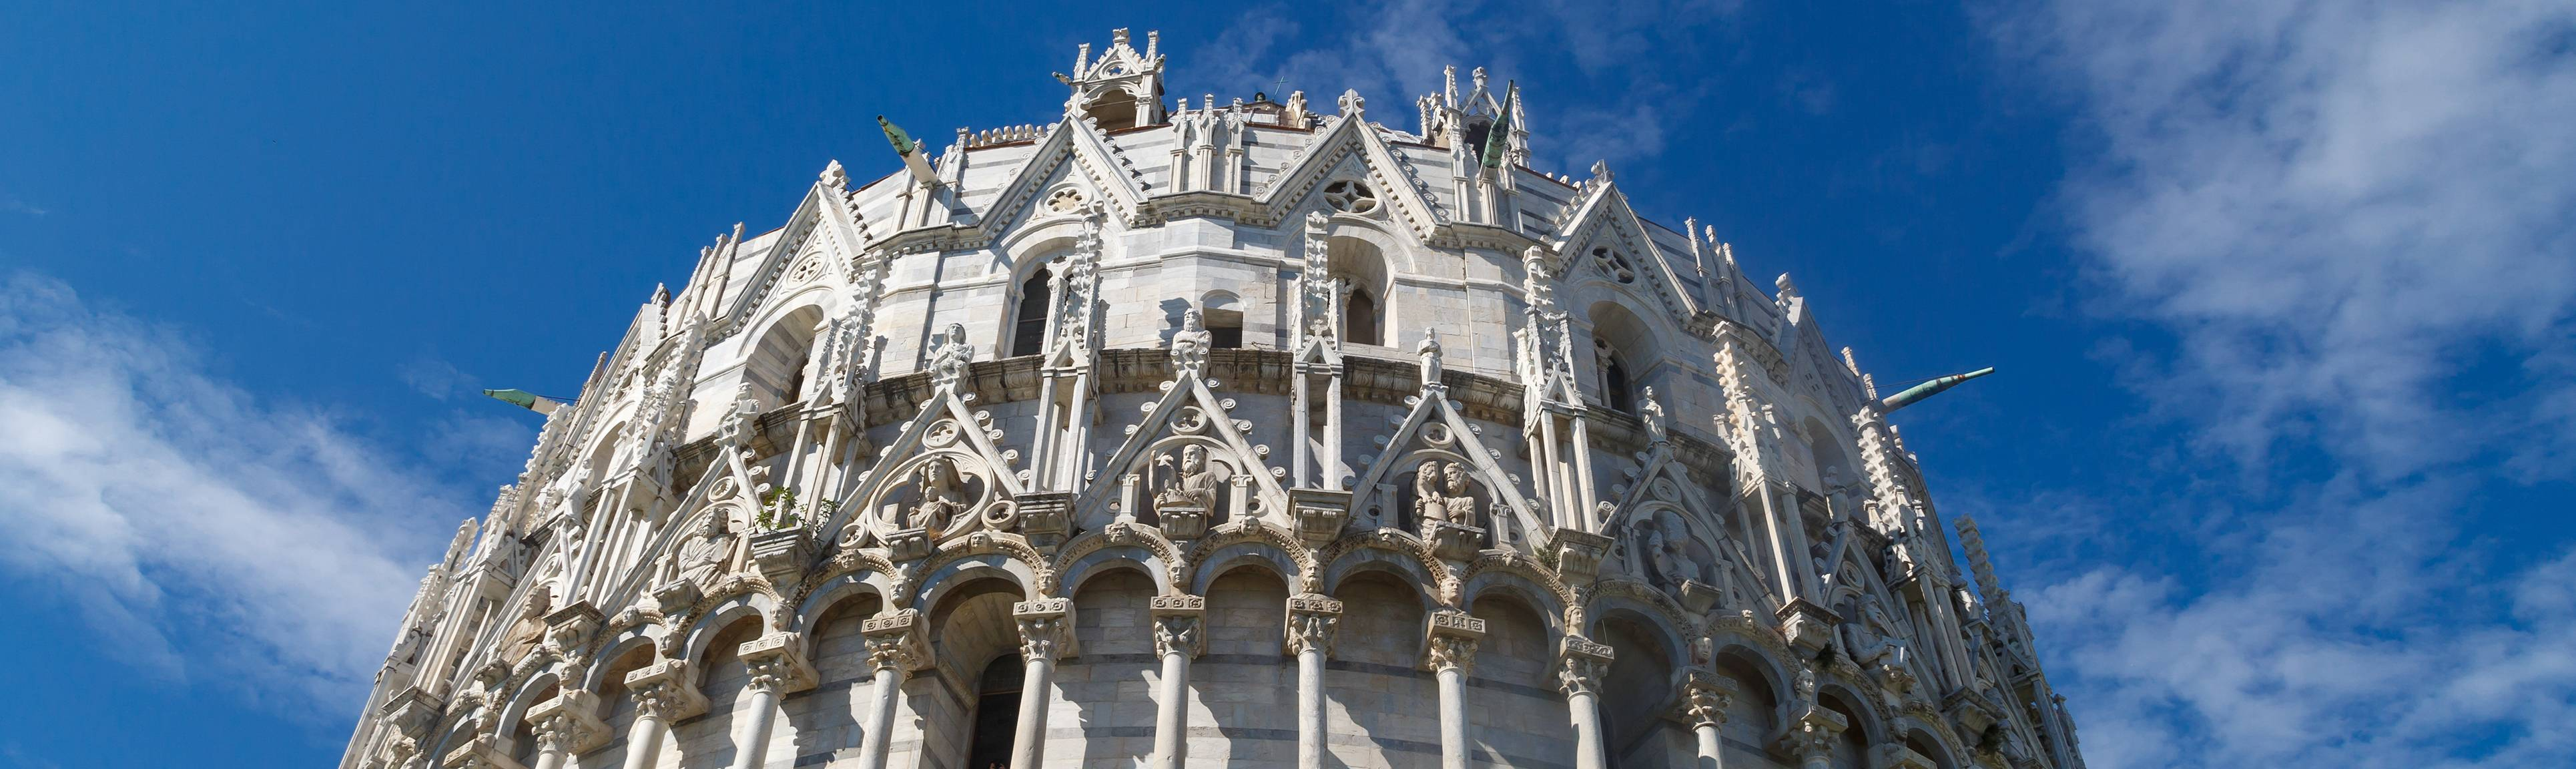 View of ornate exterior of the Baptistry in Pisa, Italy